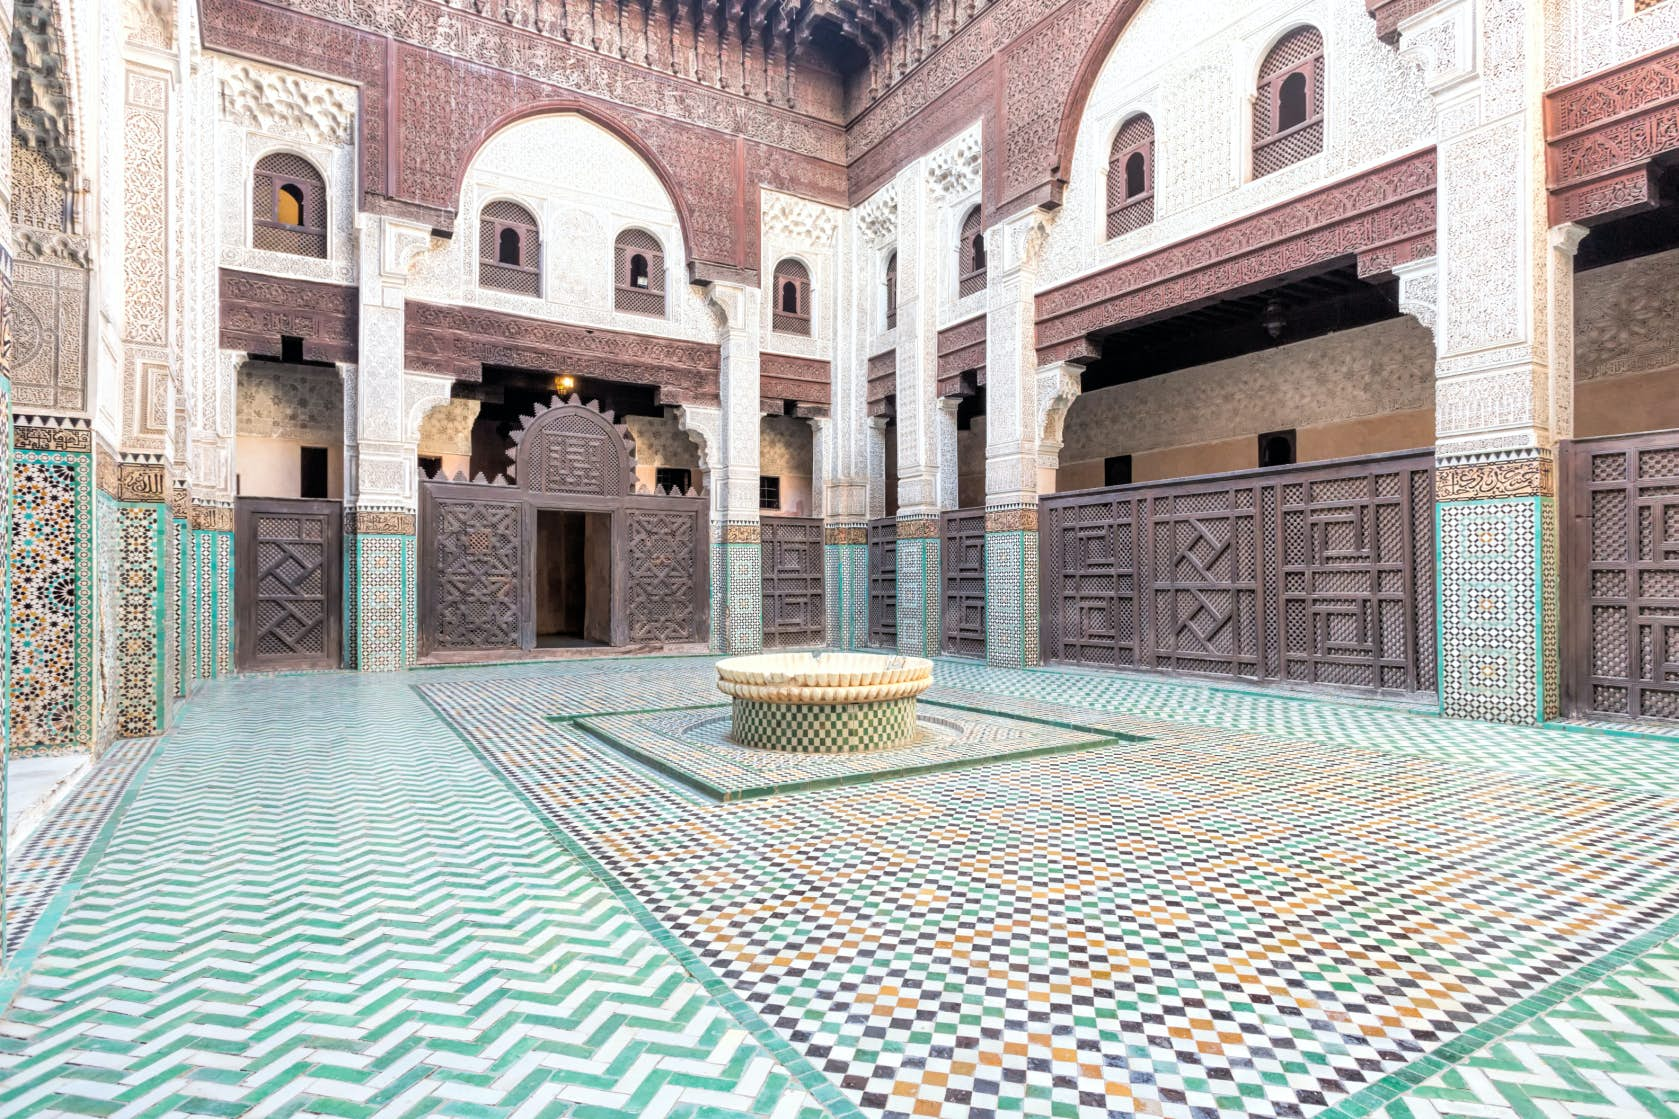 10-Days Morocco Tour from Casablanca Visiting Imperial Cities and Desert 4